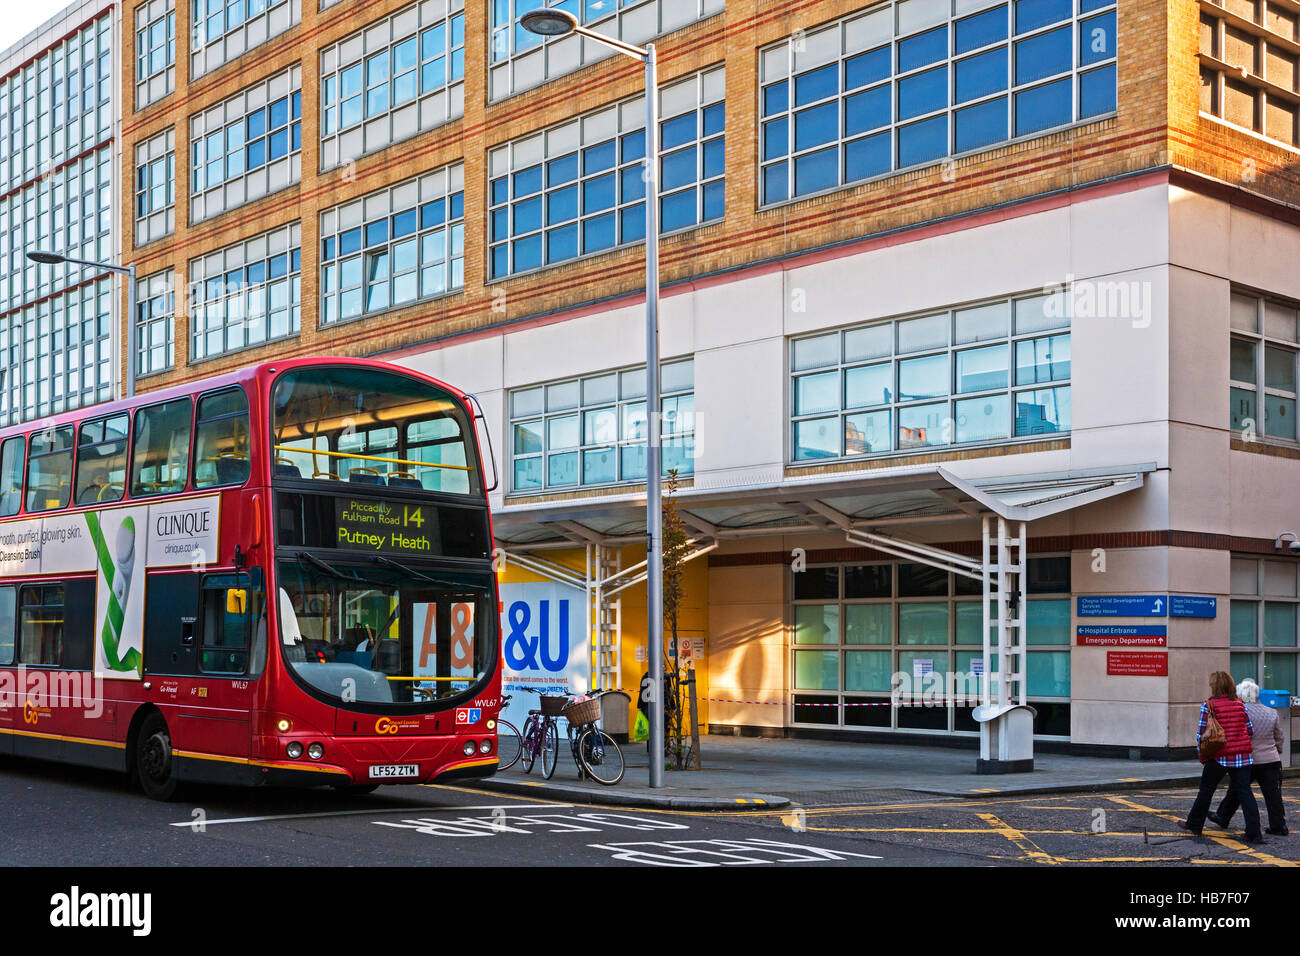 Chelsea and Westminster Hospital, Fulham Road, Chelsea, London with London Bus - Stock Image